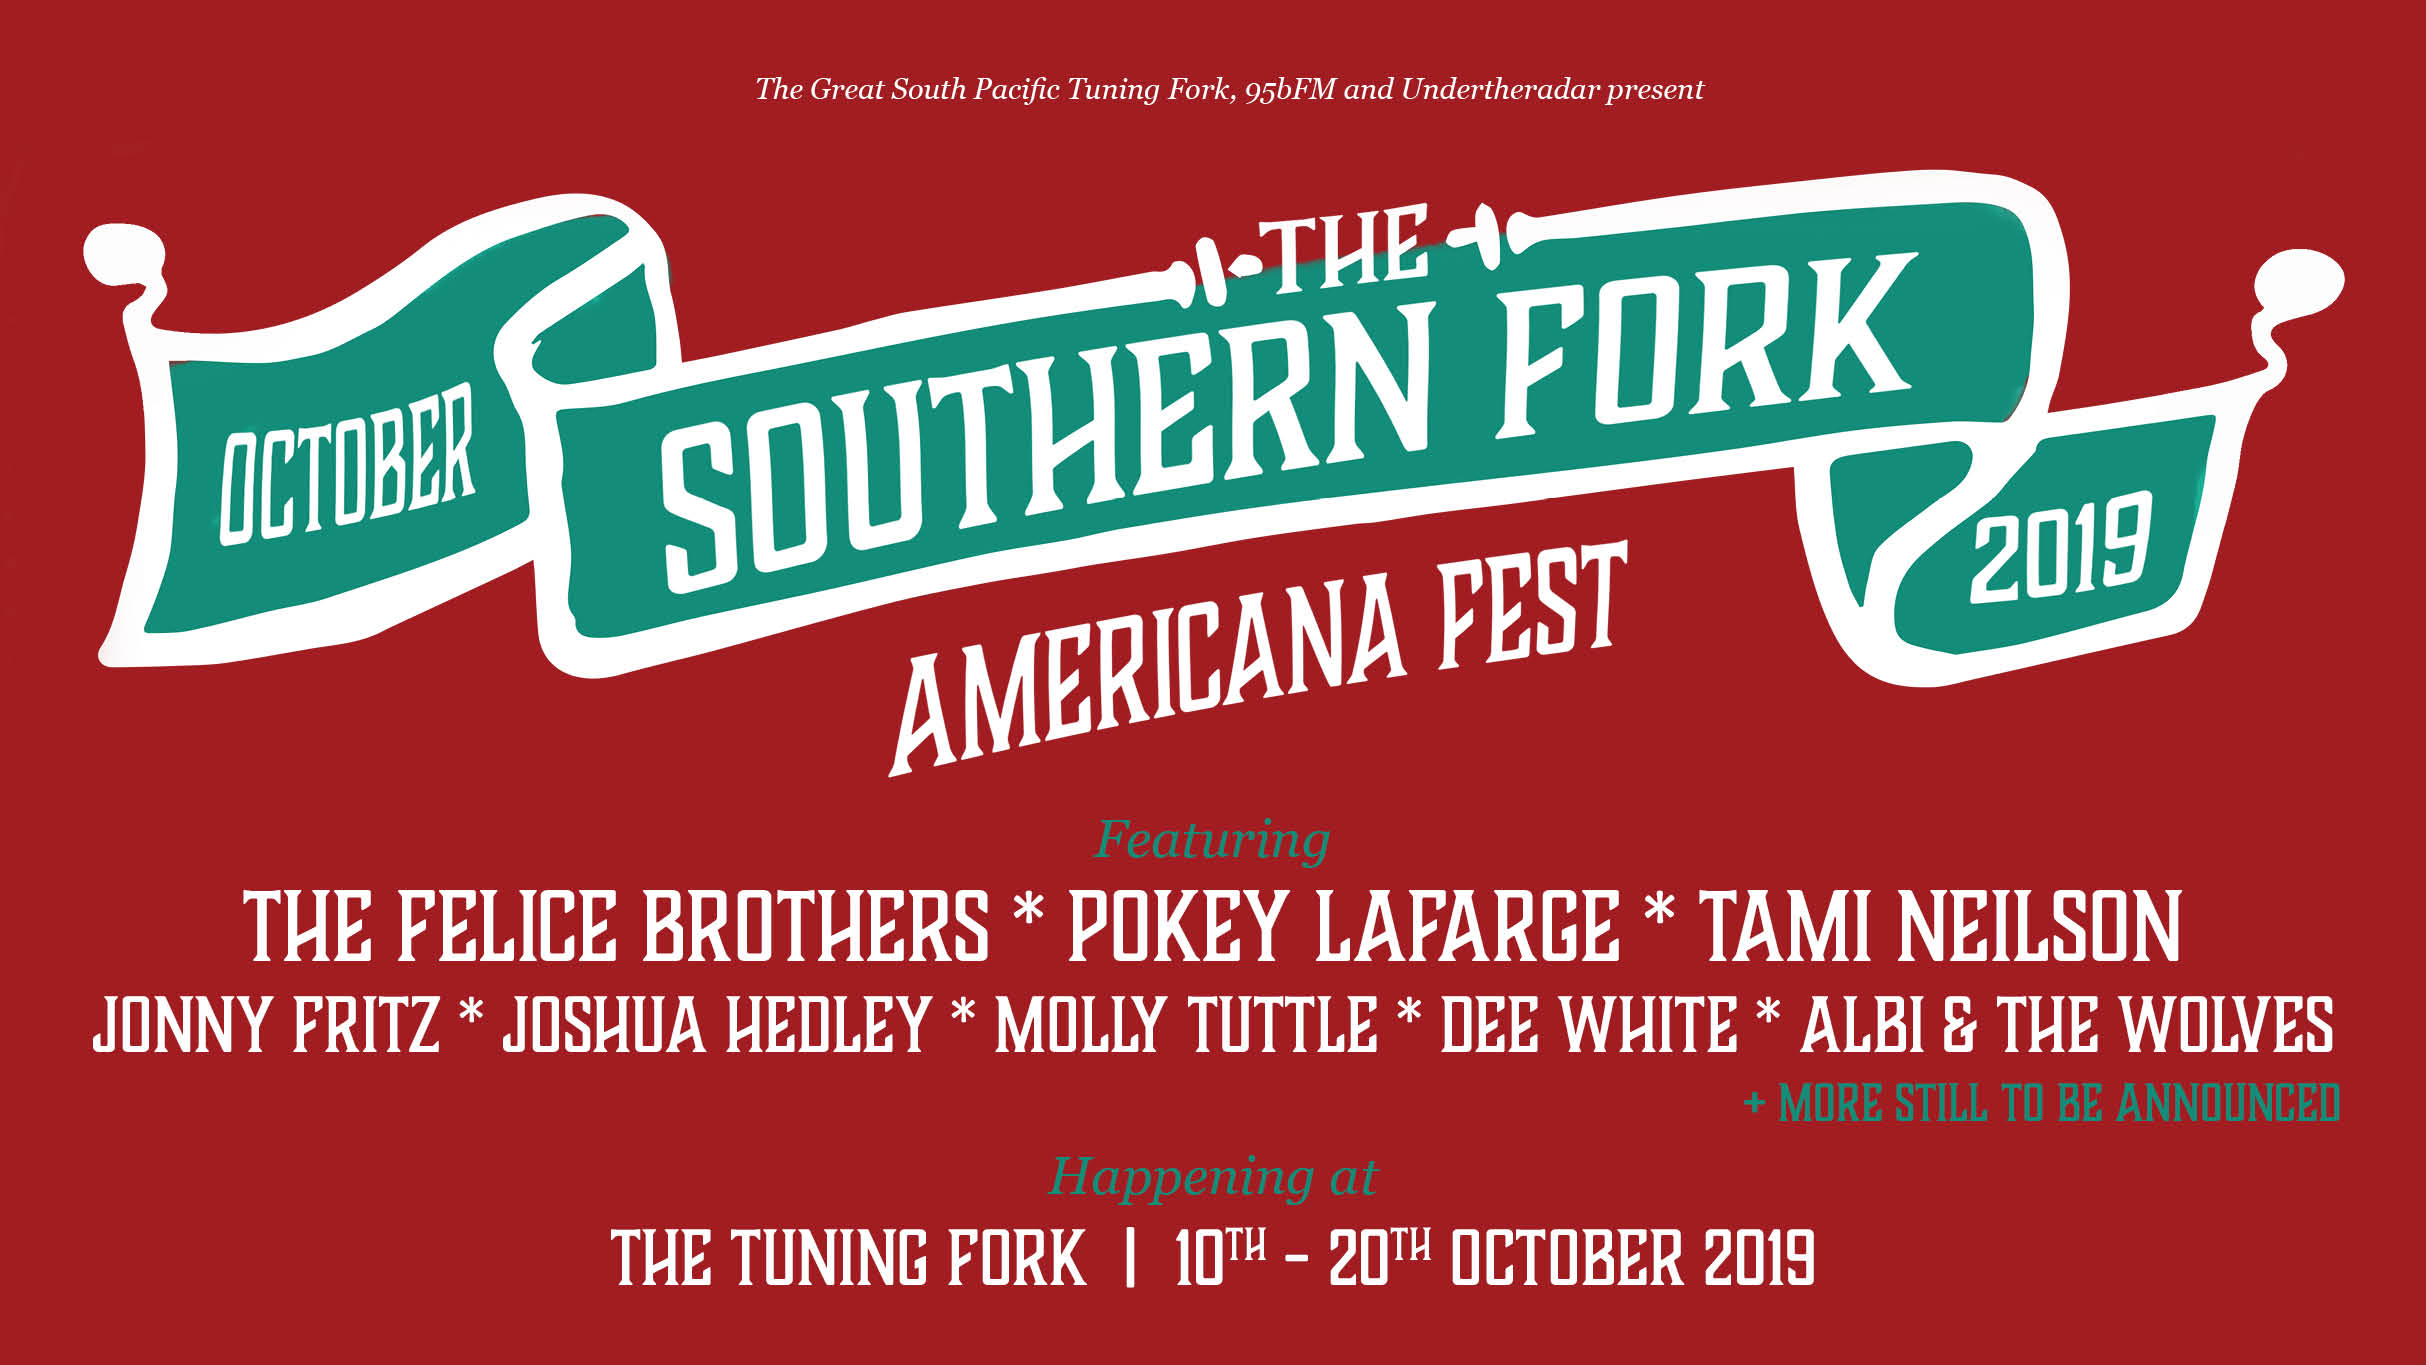 Southern Fork Americana Fest: The Felice Brothers